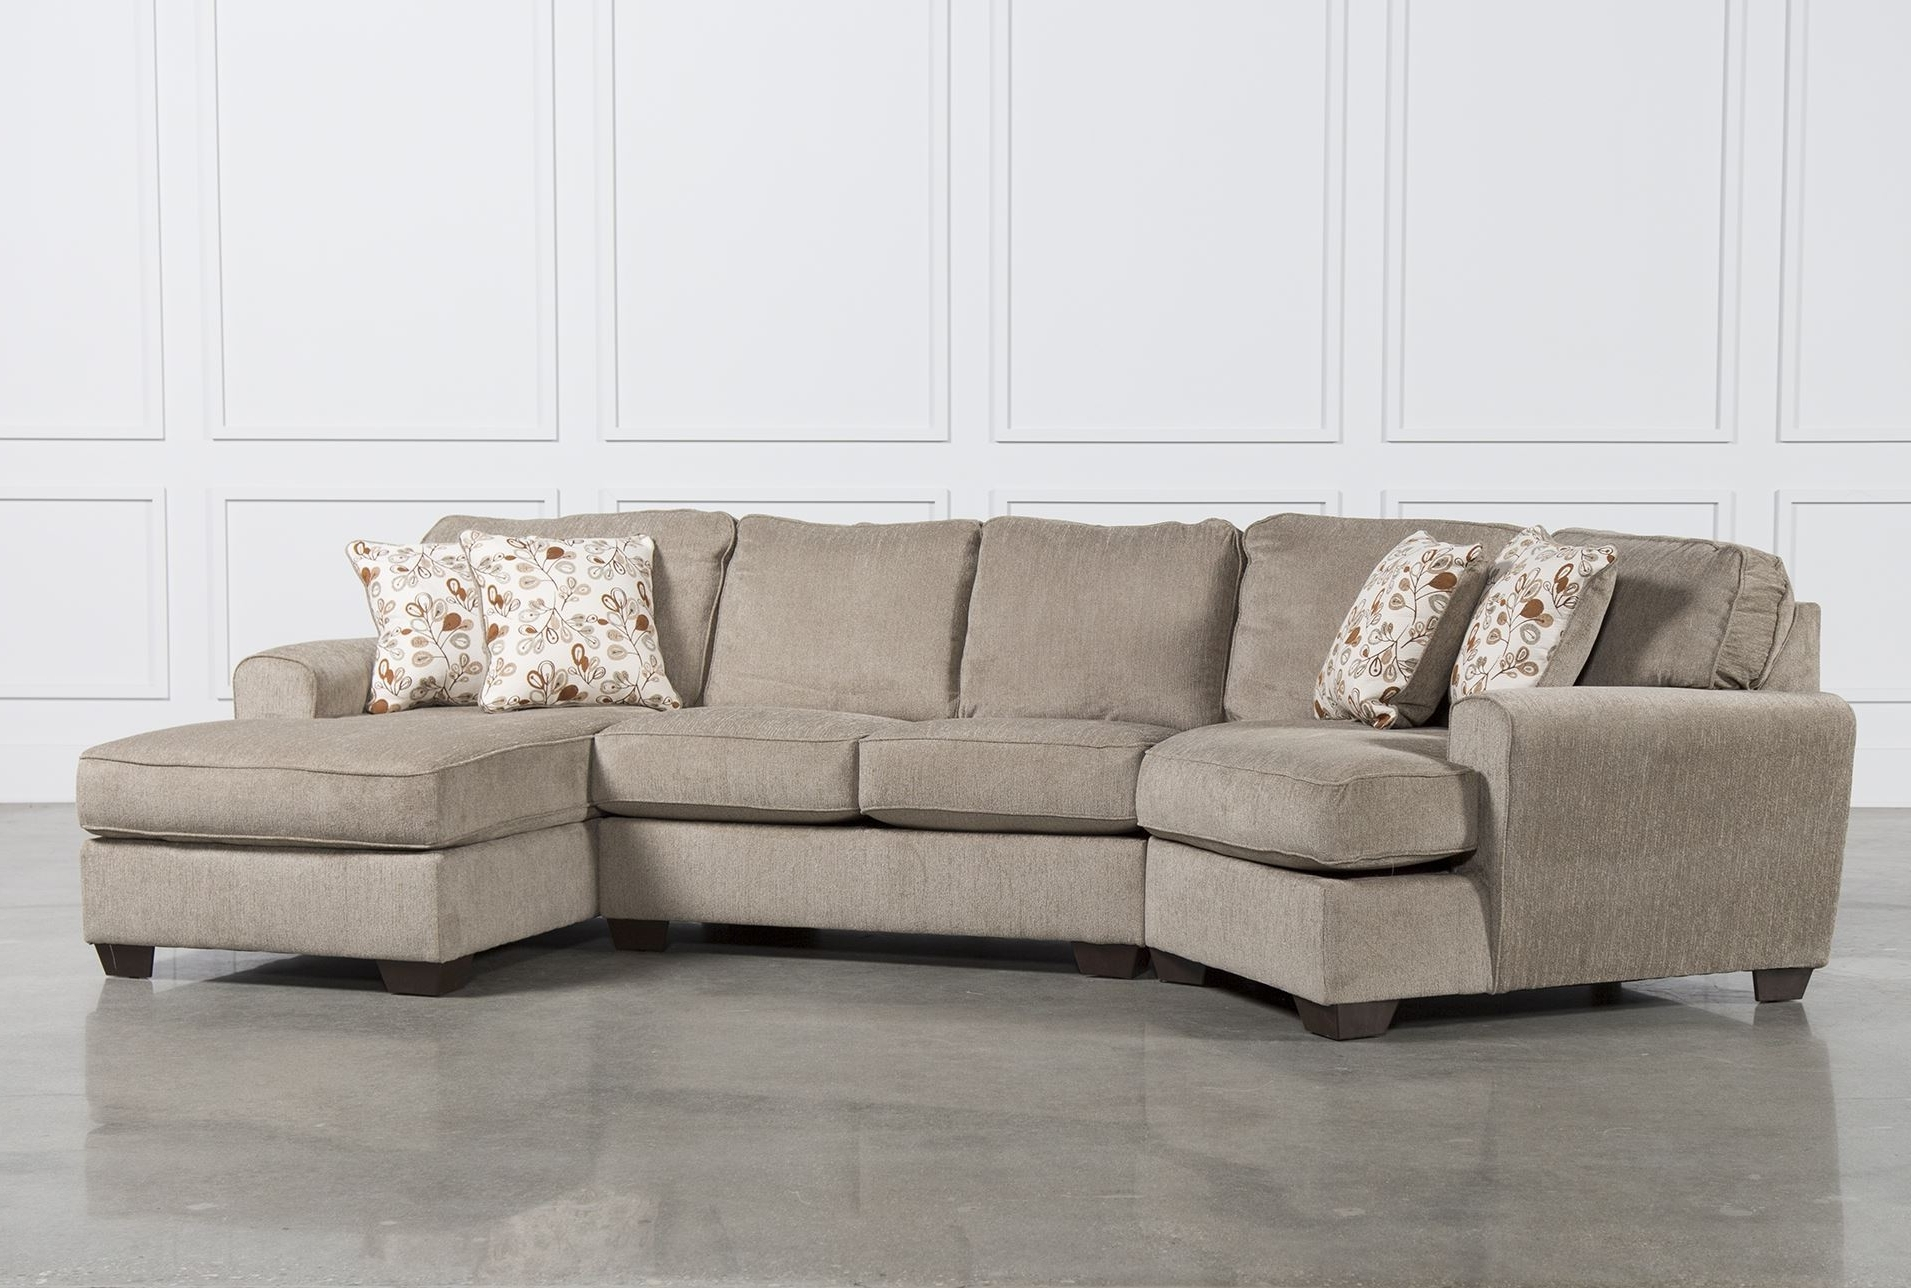 Gta Sectional Sofas Throughout Fashionable Furniture : Sectional Sofa Fabric Rc 216 088 Recliner Corner Couch (View 3 of 15)